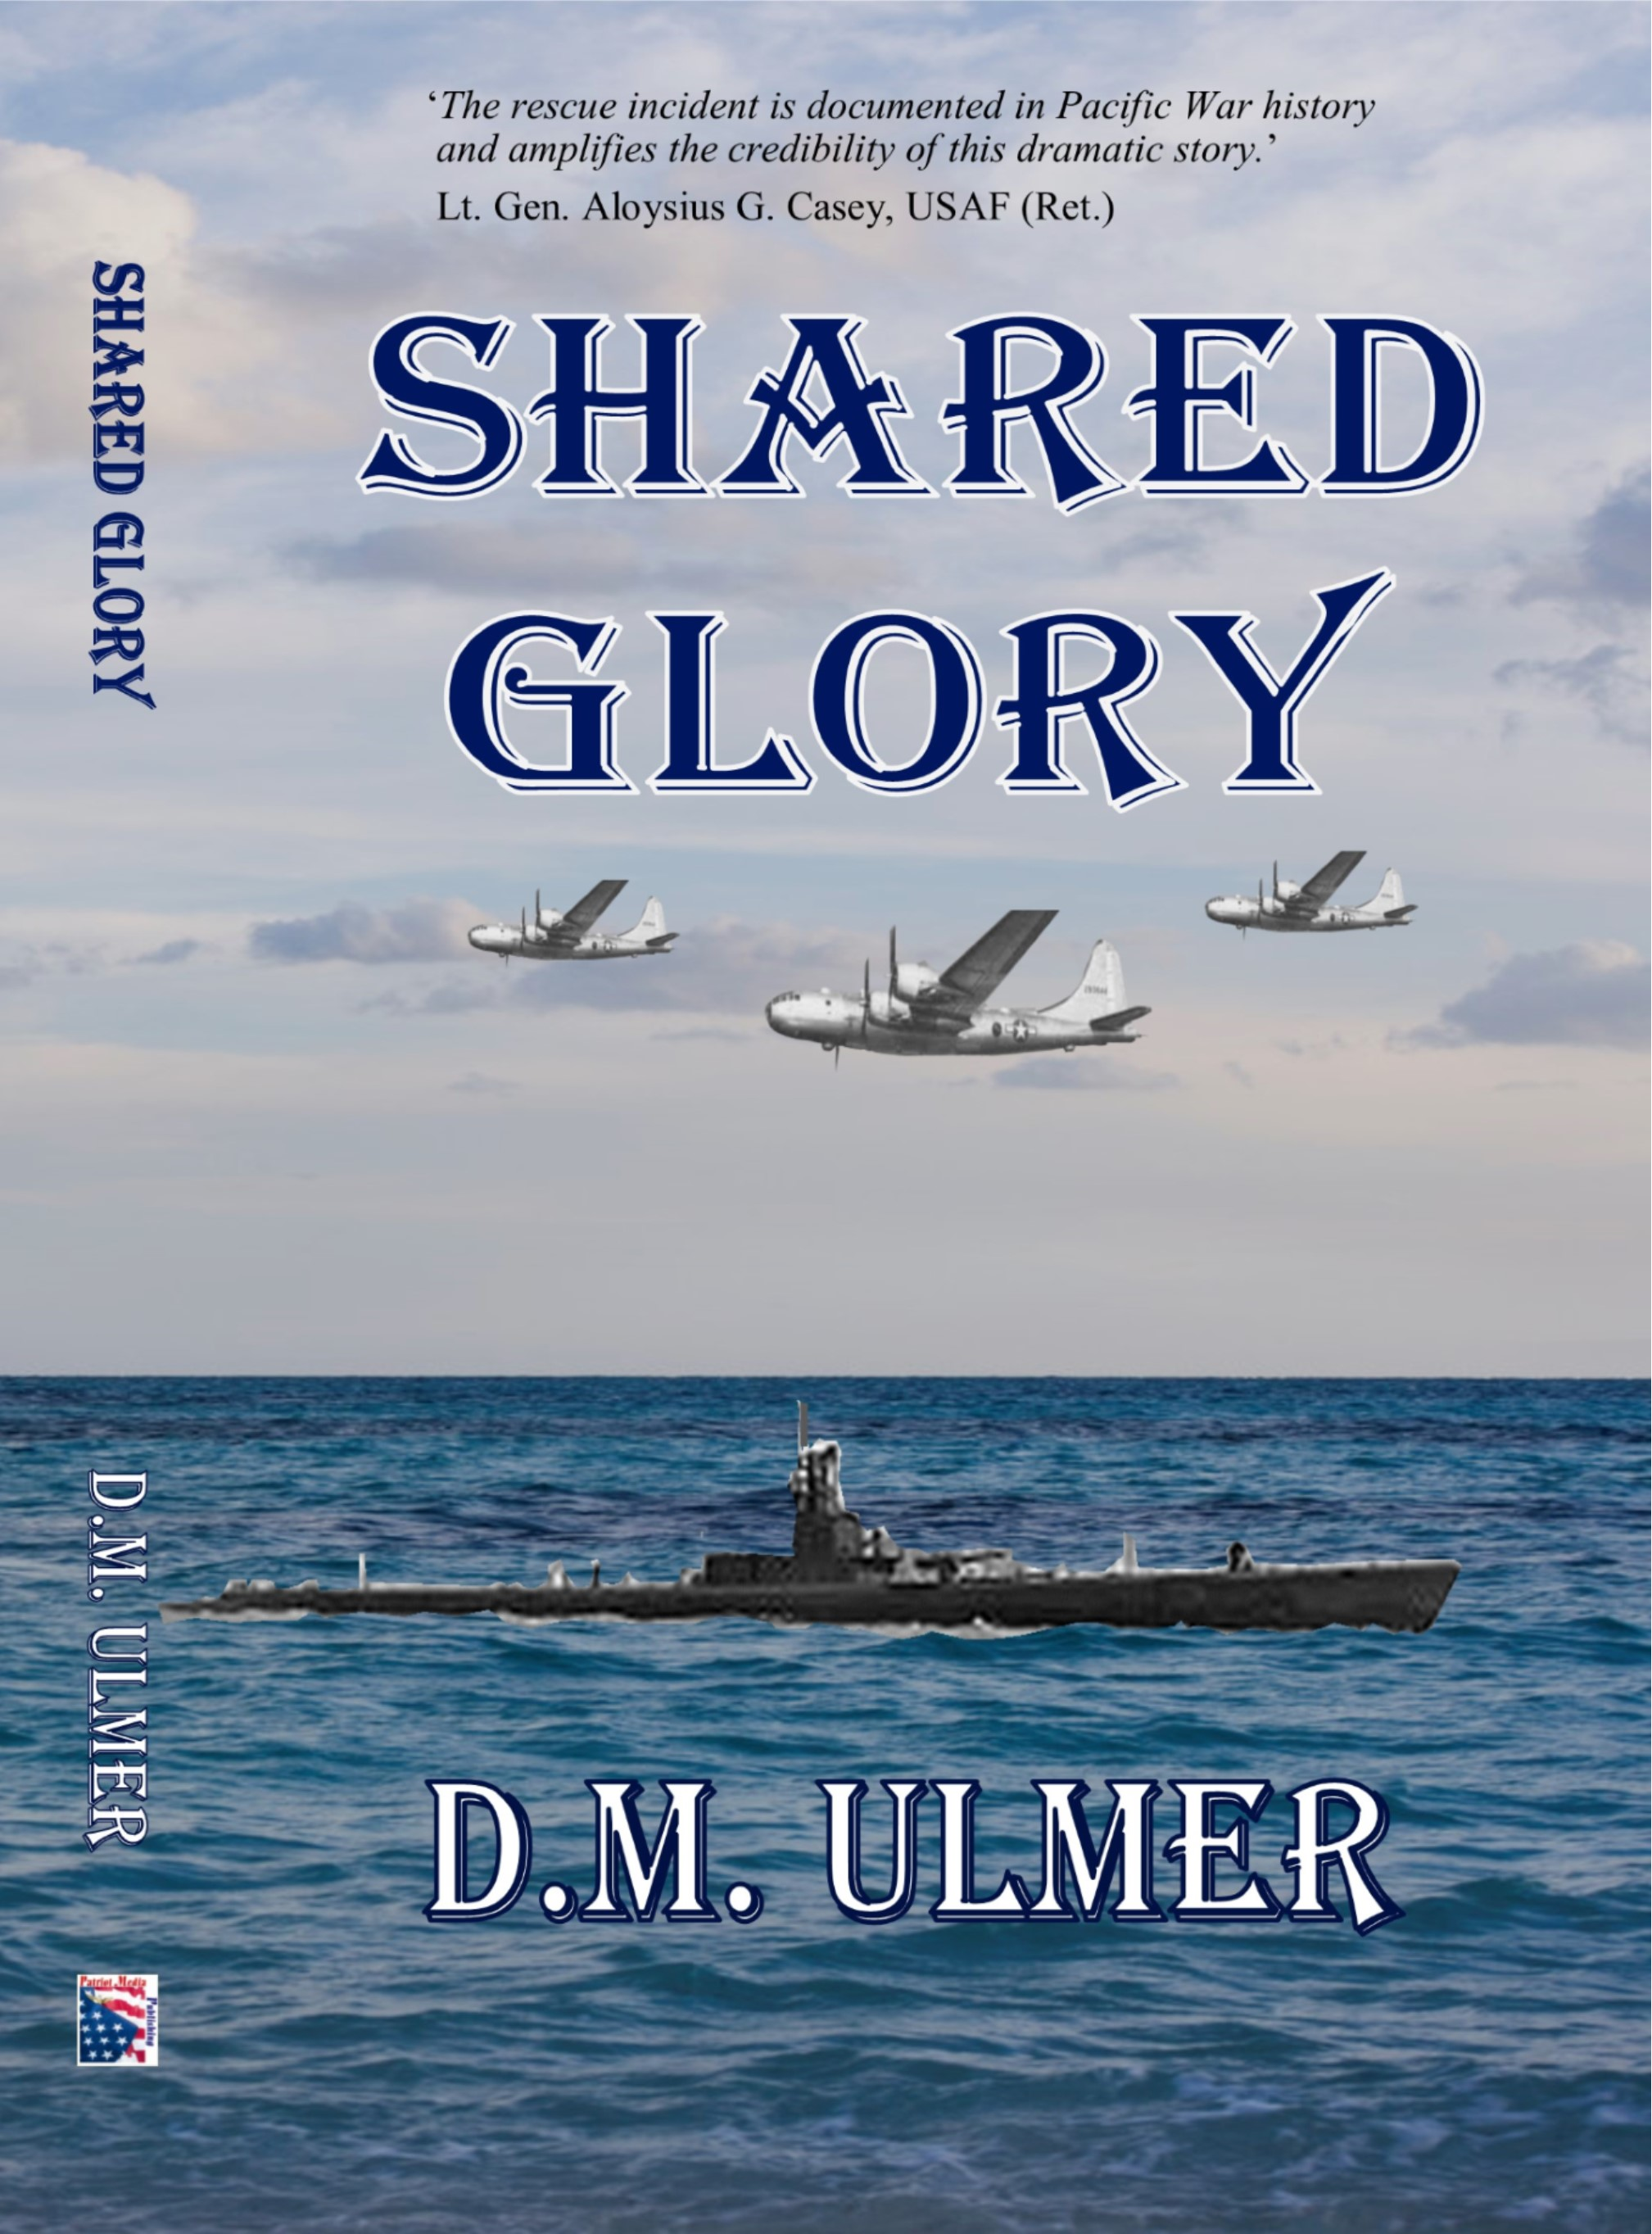 Shared Glory by D.M. Ulmer